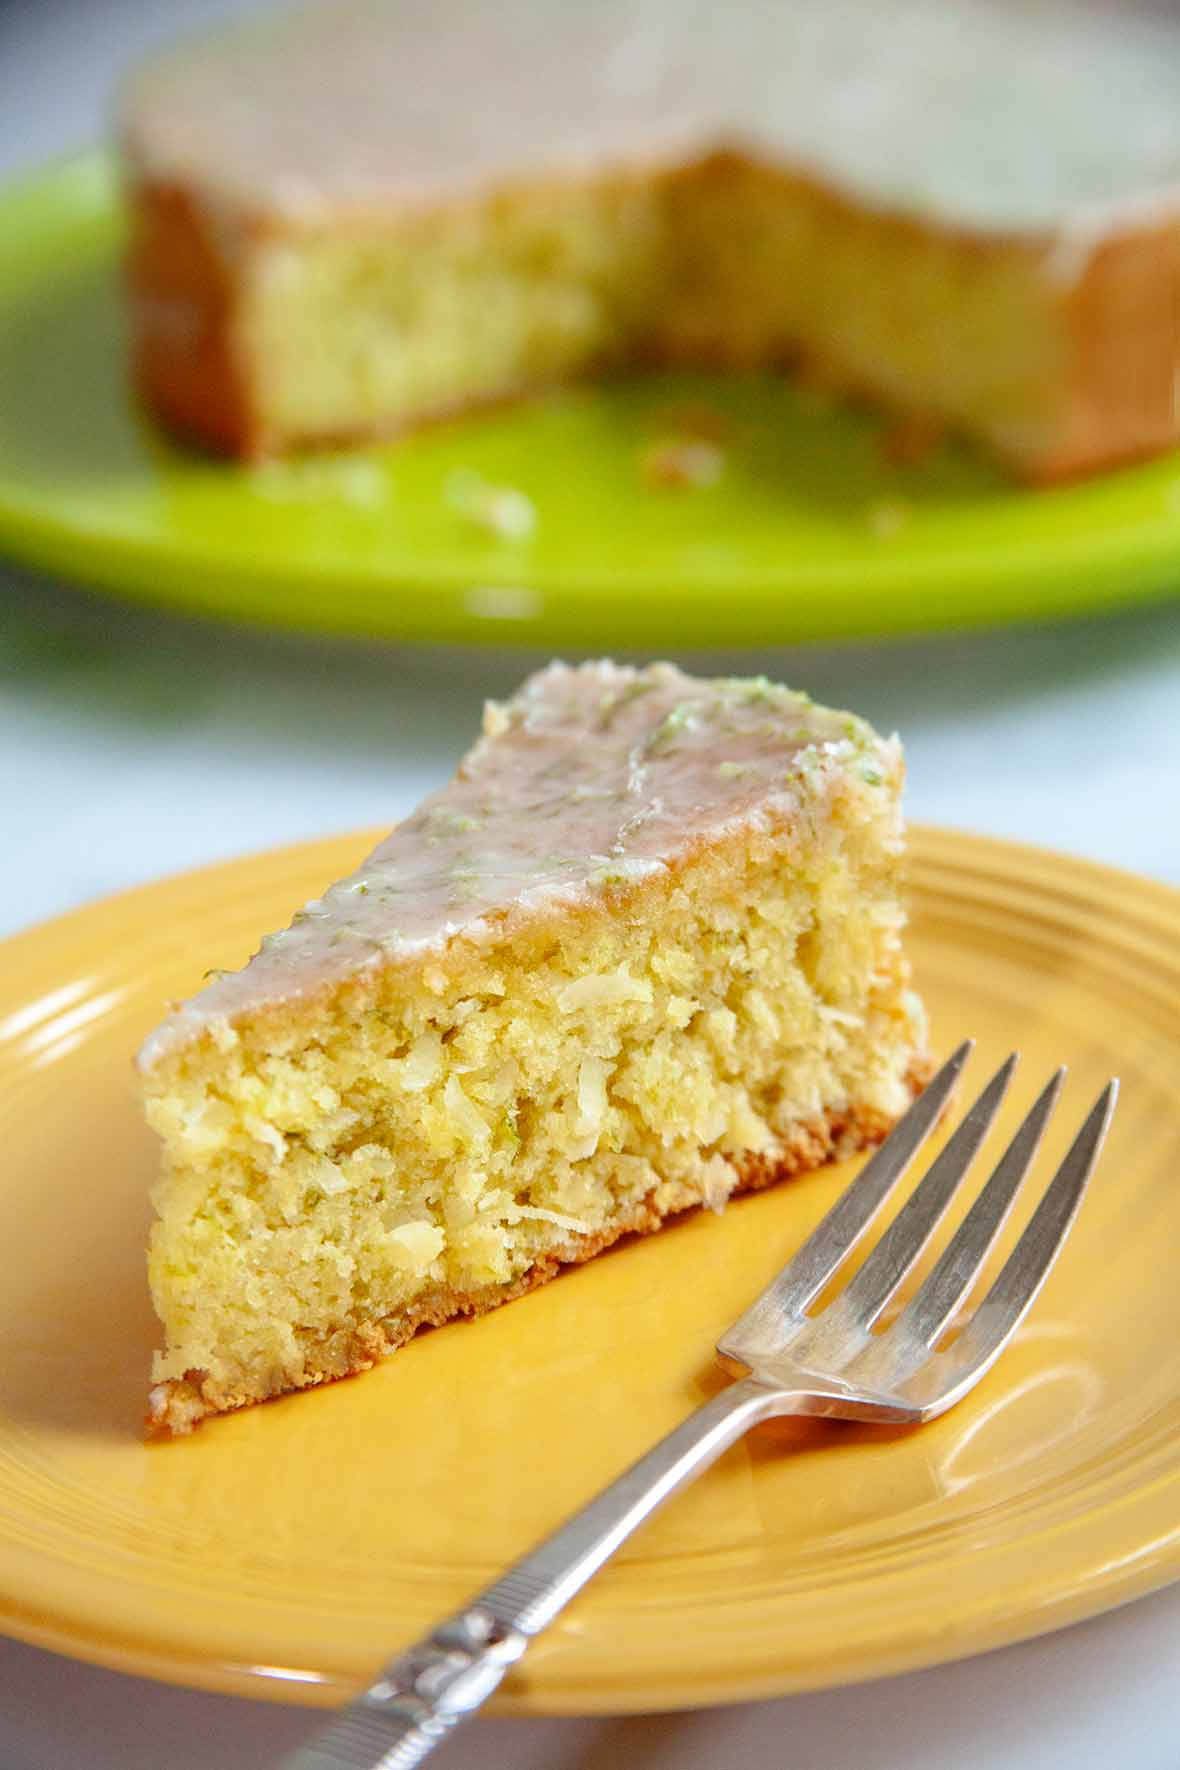 A slice of coconut lime macadamia cake on a yellow plate with a fork resting beside it